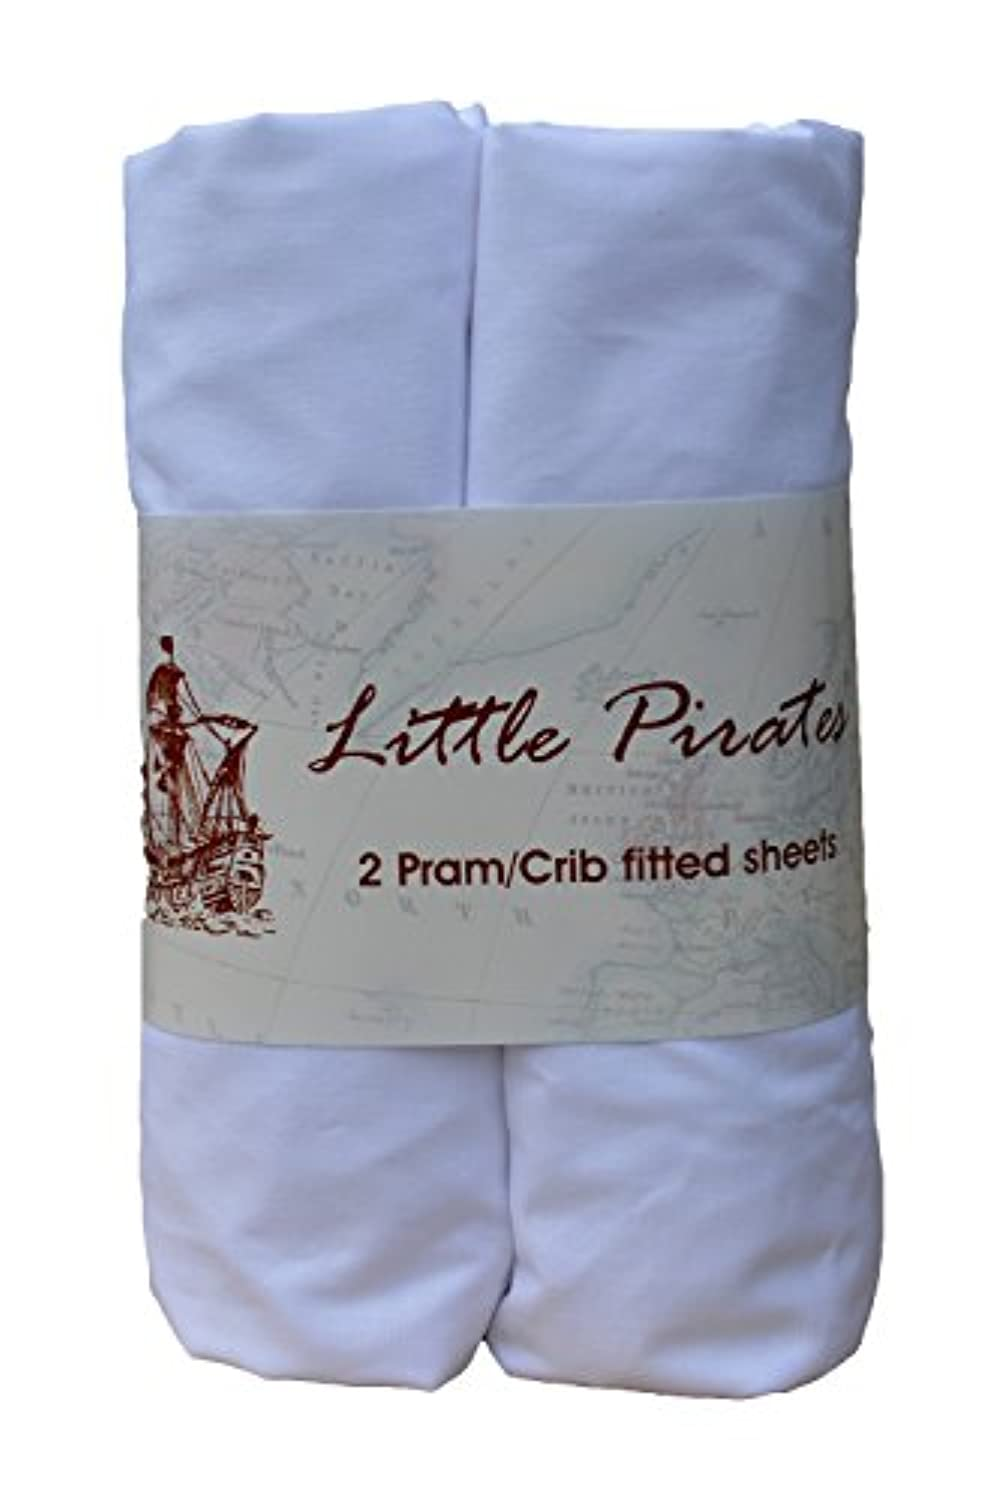 Baby Bassinet Cradle Jersey Fitted Sheet White, 100% Cotton-Luxury Brushed Percale 15x33 inches by Little Pirates